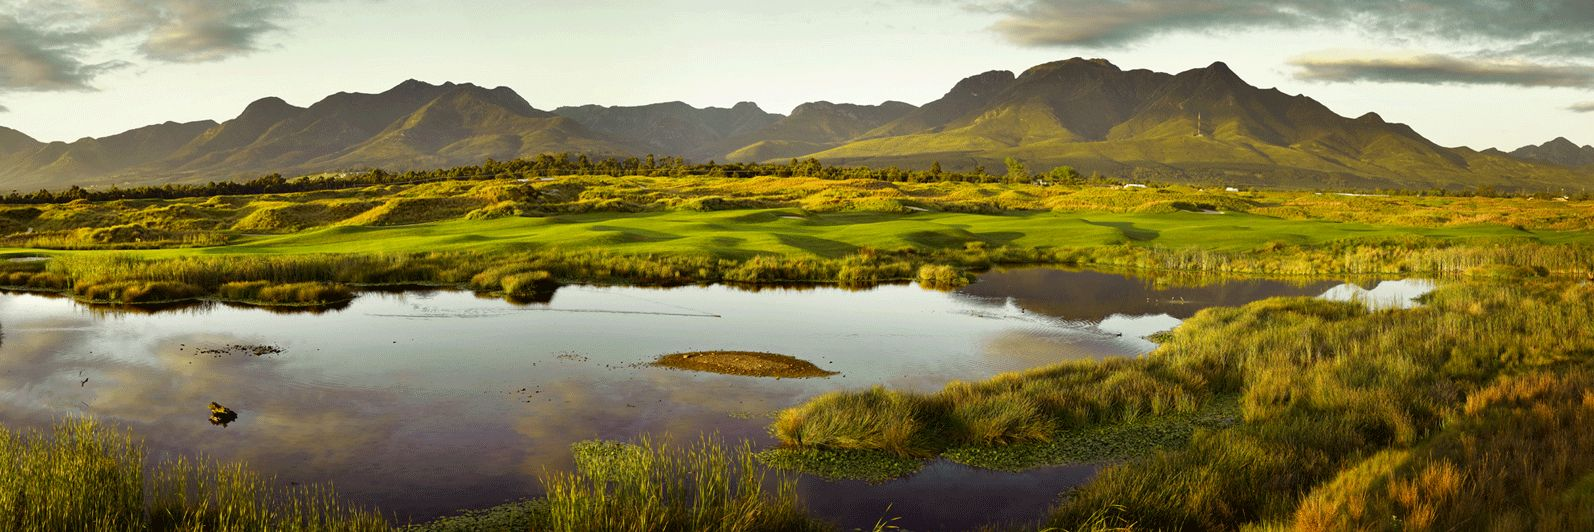 Preview of album photo named World Amateur Tour - The Links at Fancourt